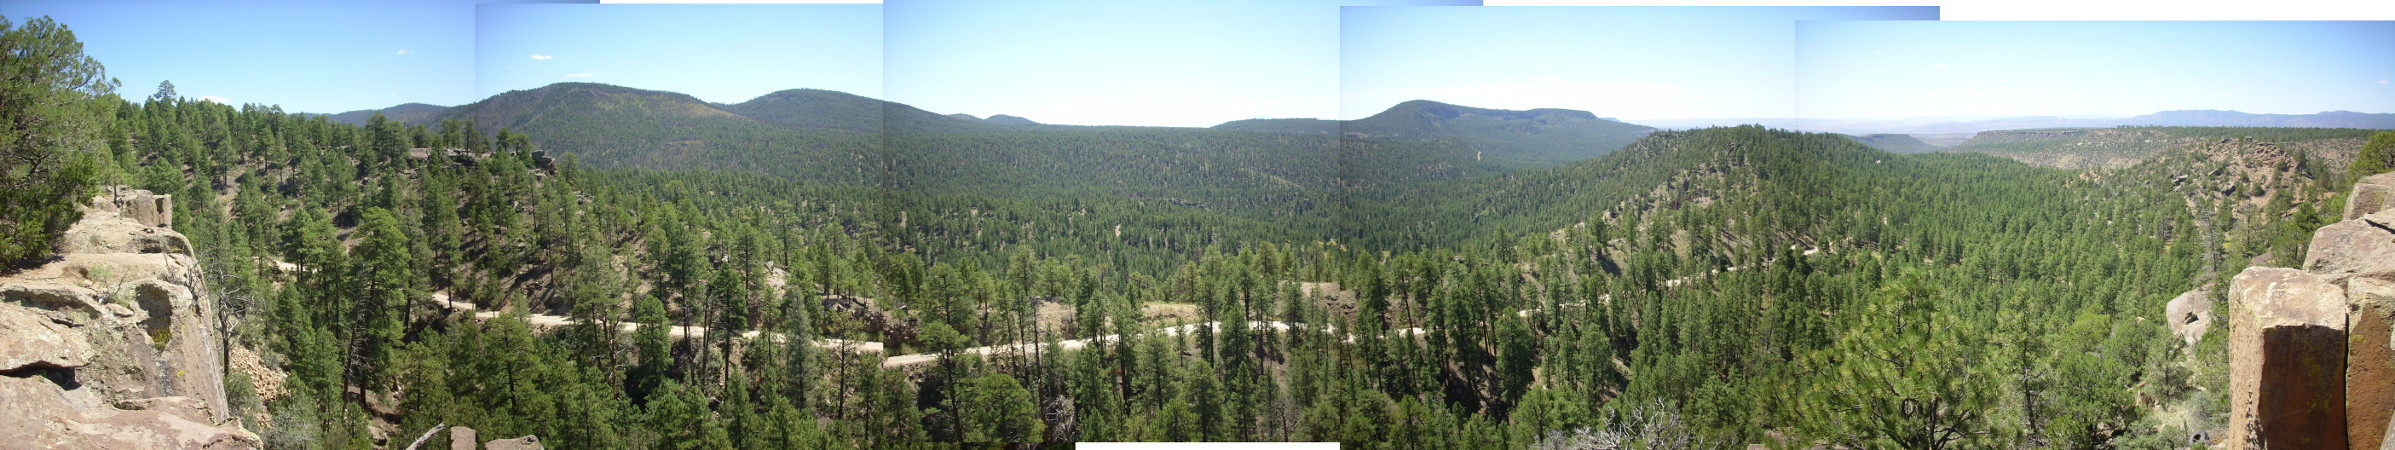 Panorama of southwestern Jemez